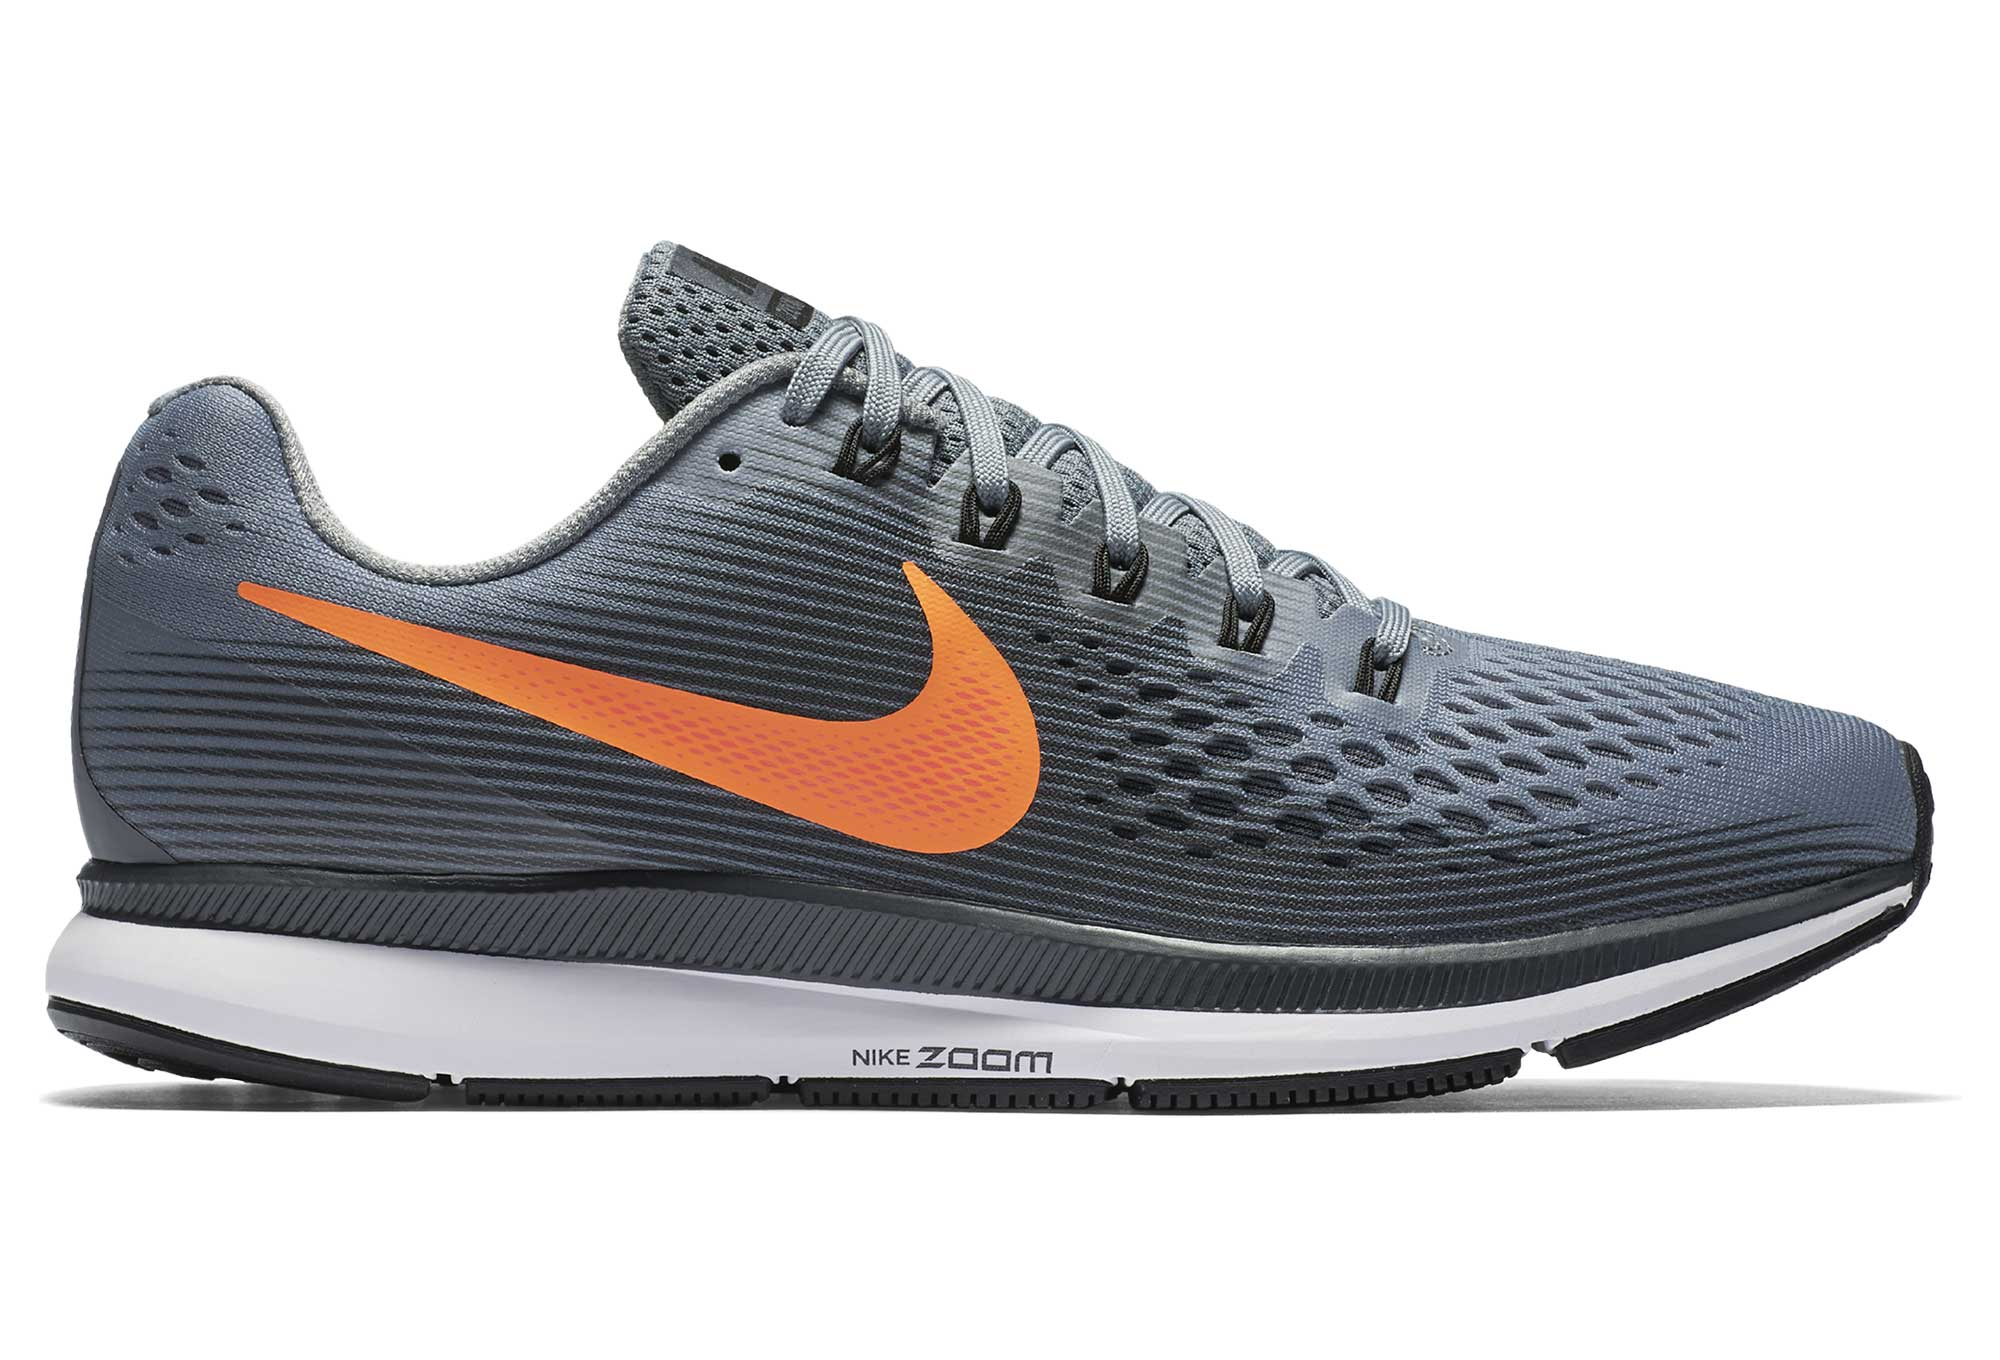 san francisco acb1c 9a613 NIKE AIR ZOOM PEGASUS 34 Shoes Grey Orange Men   Alltricks.com